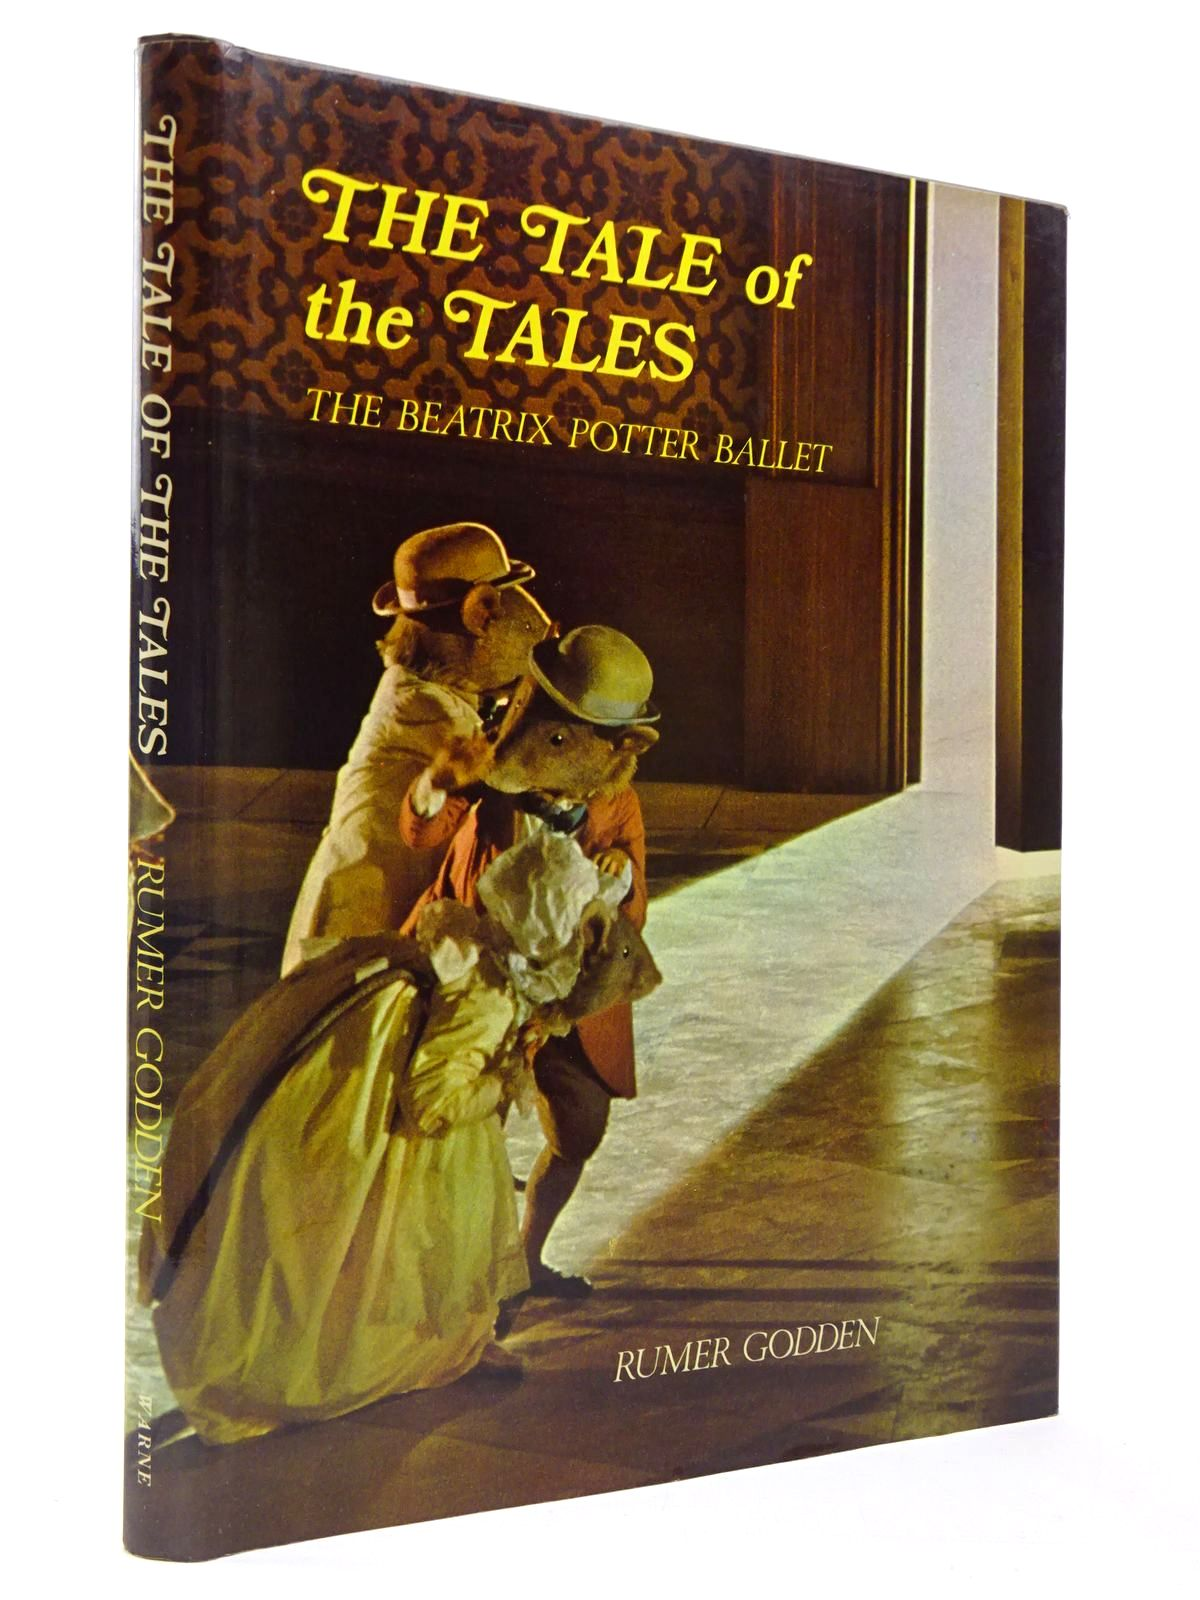 Photo of THE TALE OF THE TALES written by Potter, Beatrix Godden, Rumer illustrated by Potter, Beatrix published by Frederick Warne (STOCK CODE: 2129871)  for sale by Stella & Rose's Books